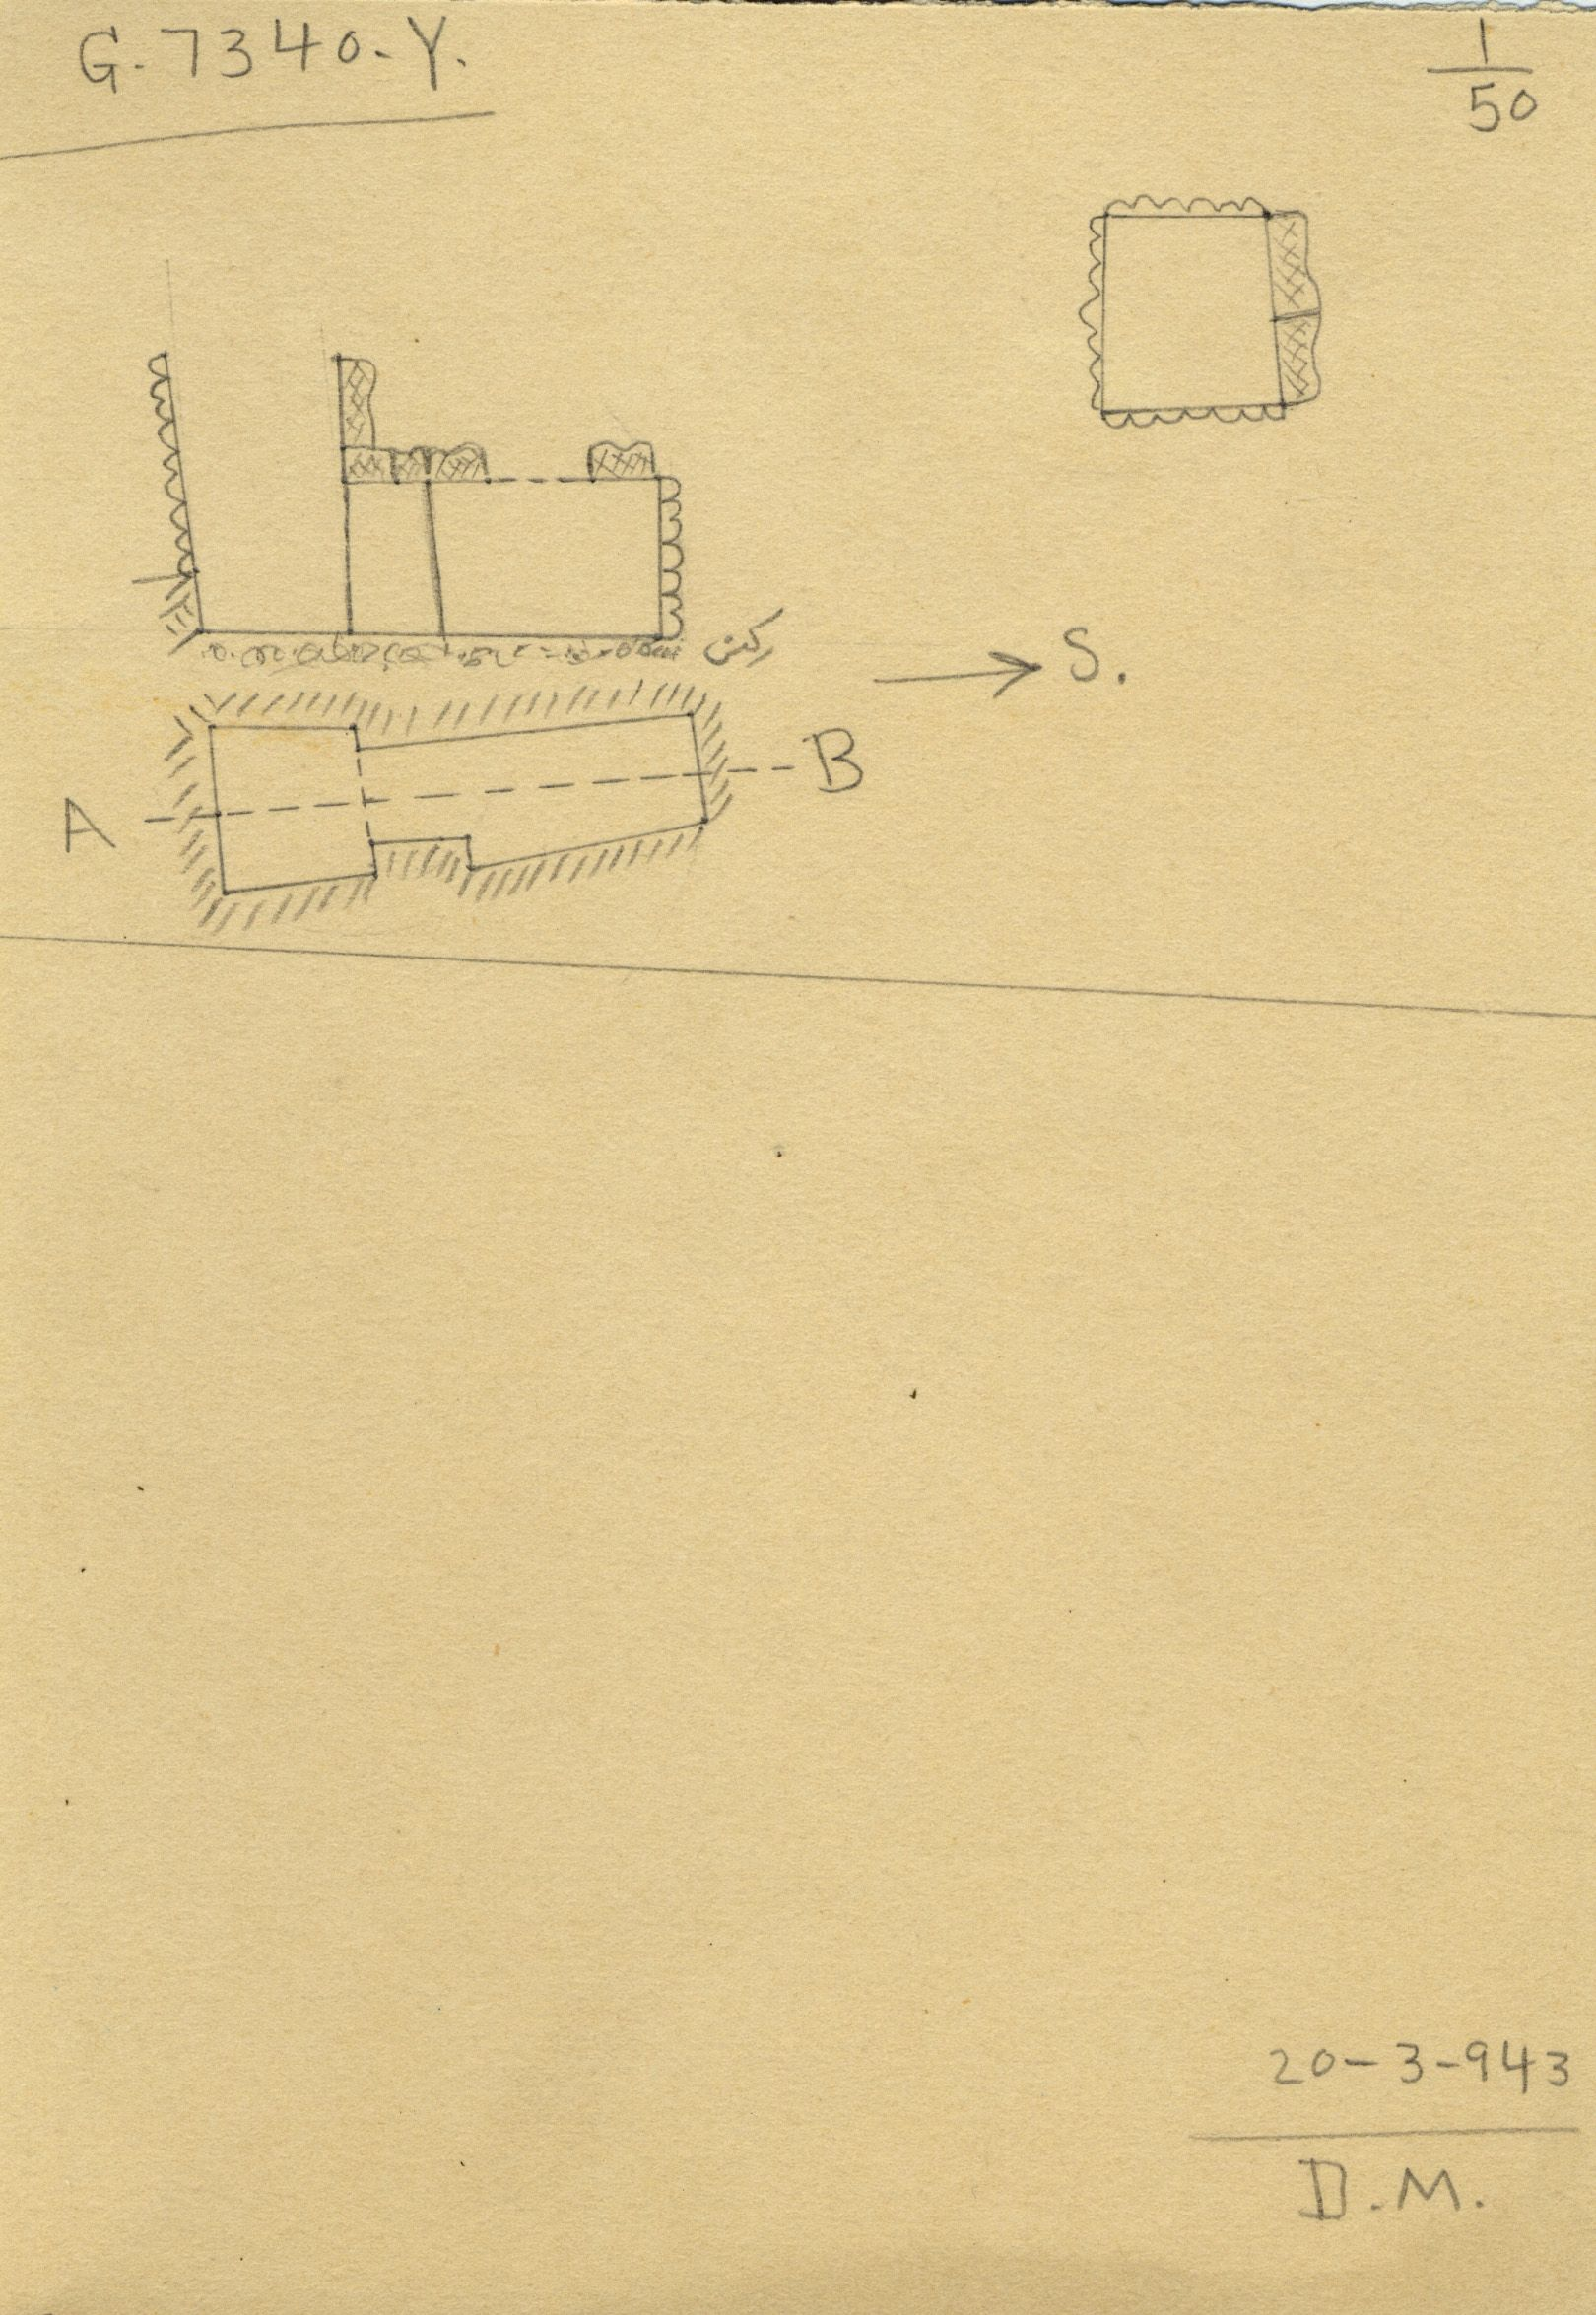 Maps and plans: G 7330-7340: G 7340, Shaft Y